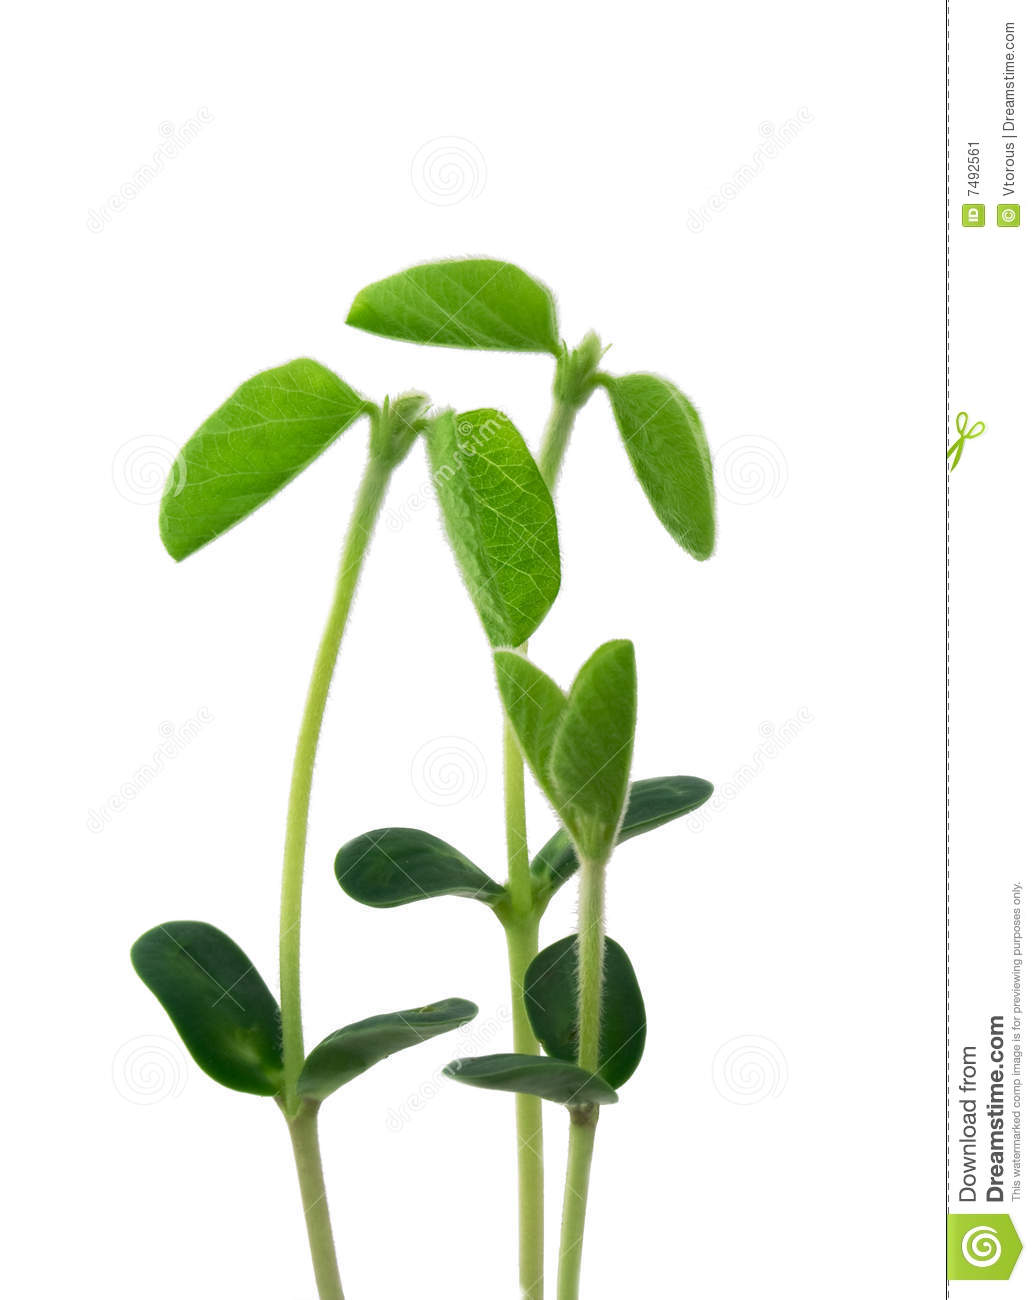 Young plants like a familiy